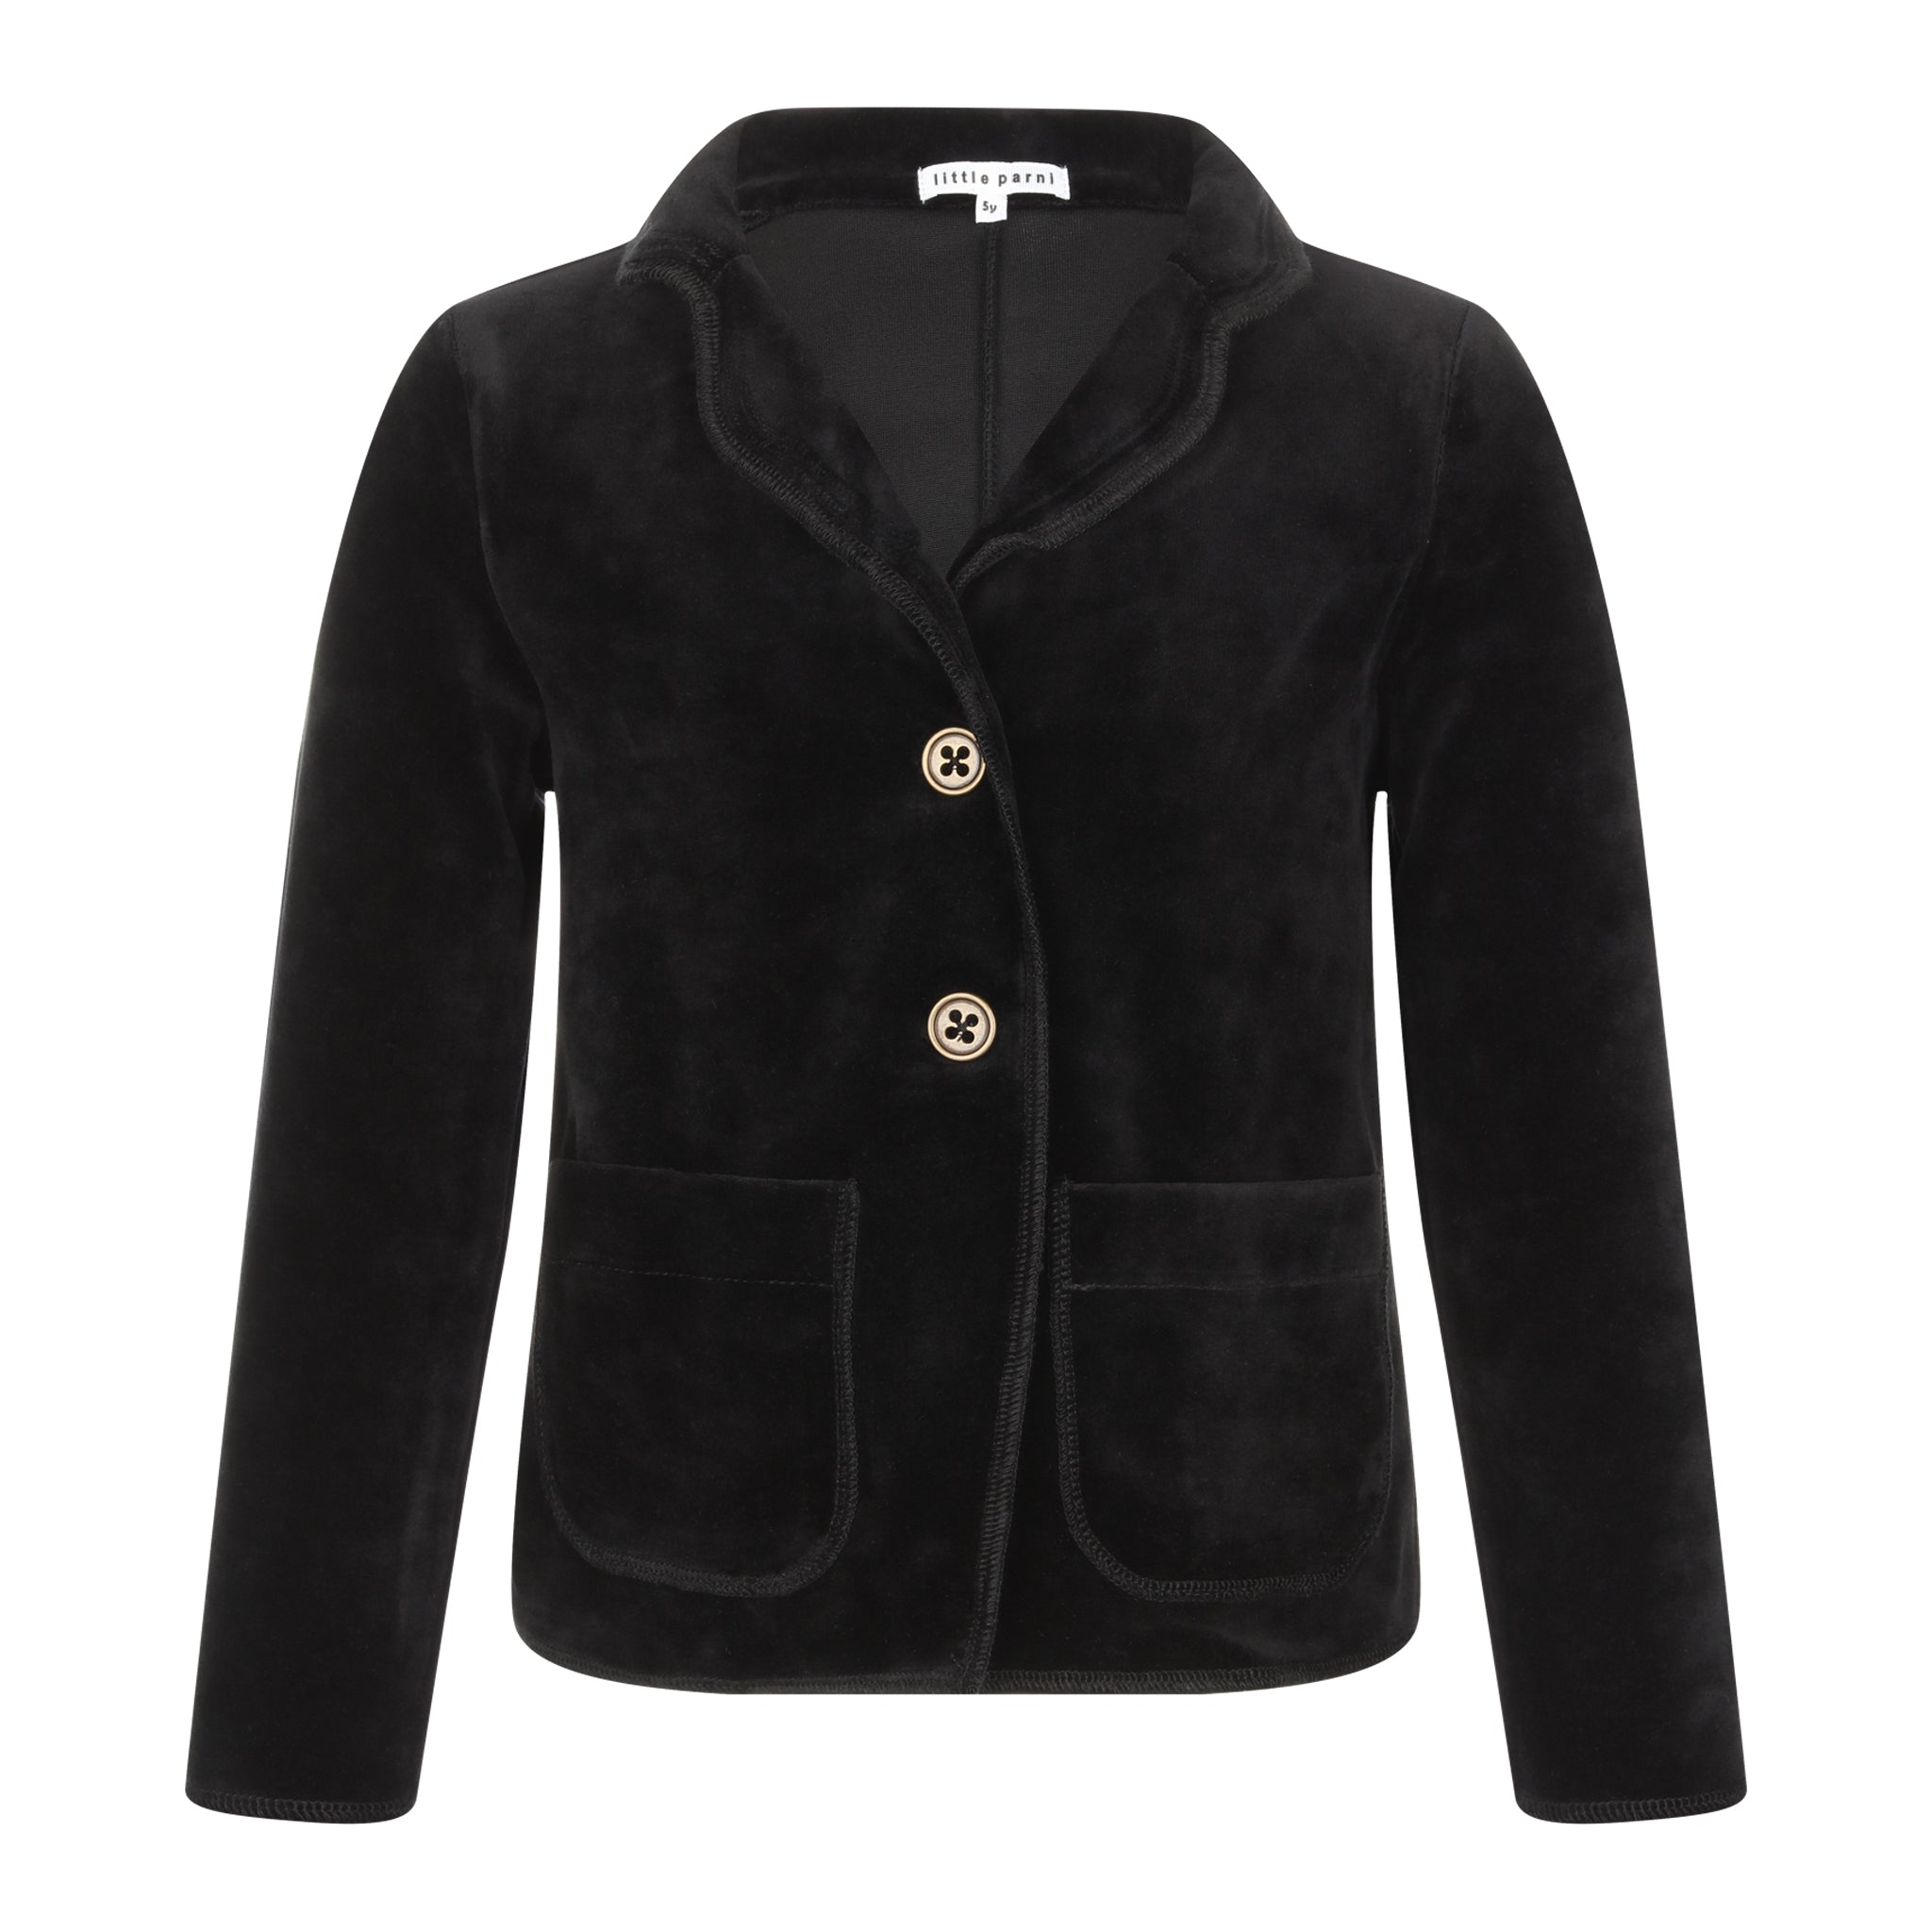 Parni Black Velour Blazer